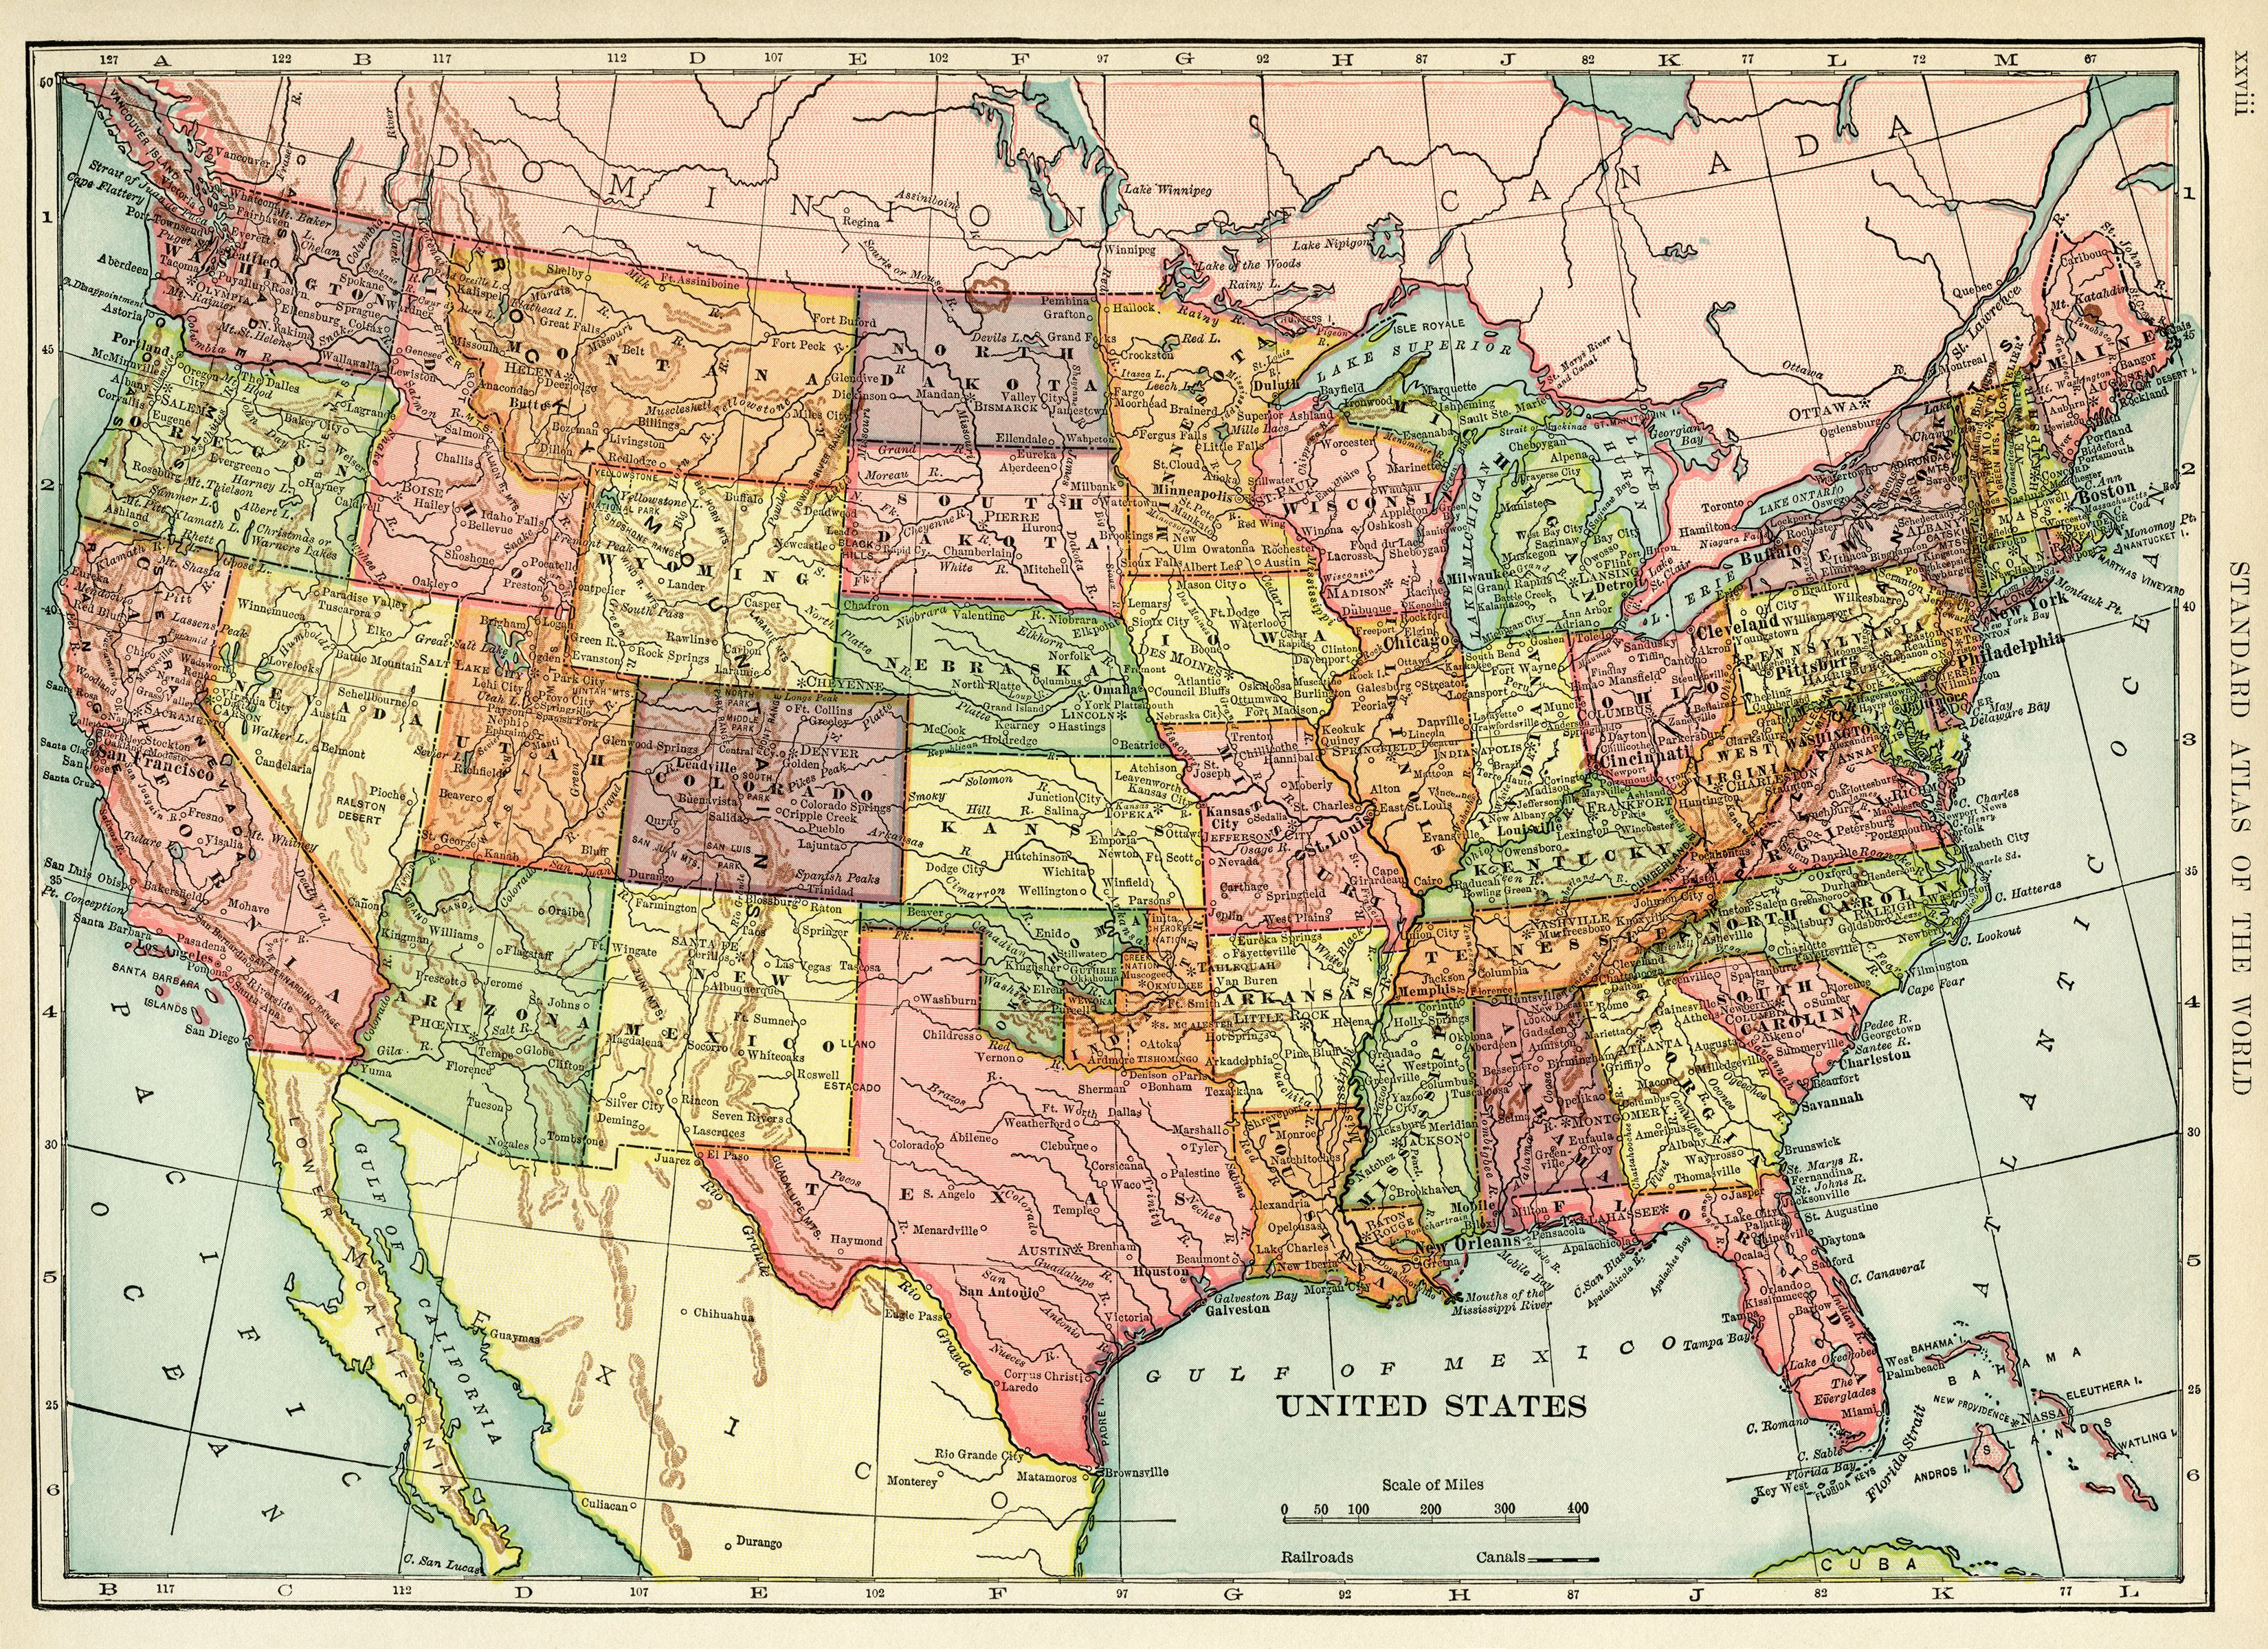 united states map vintage map antique map history